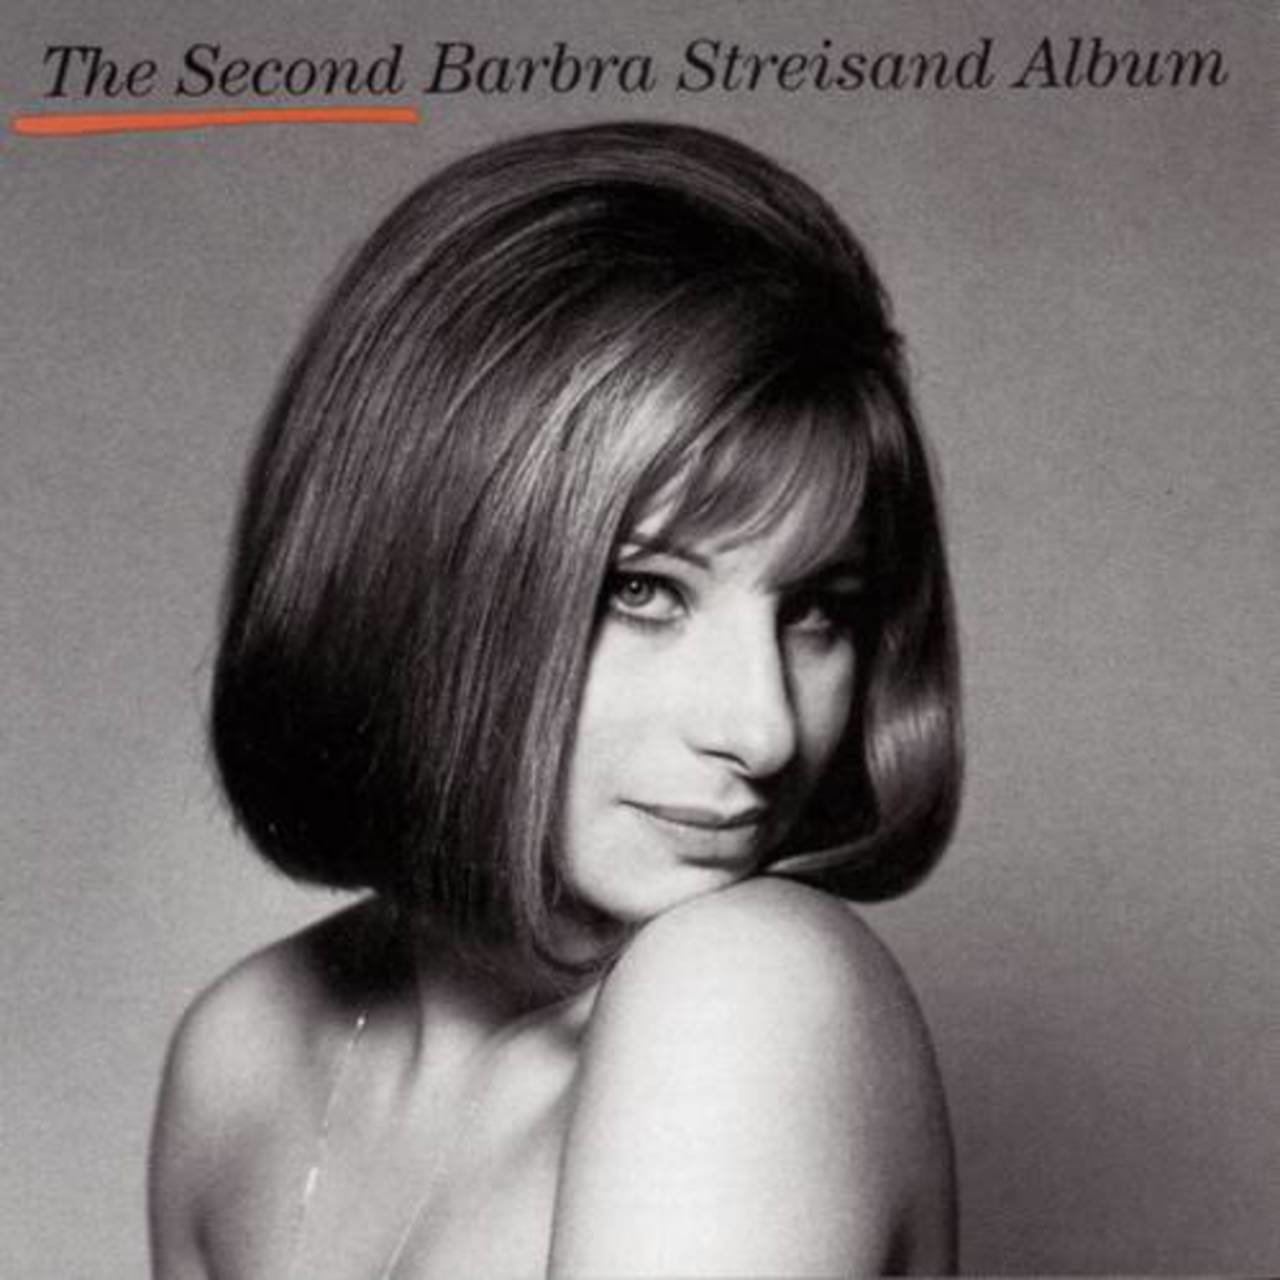 The coloring book barbra streisand - The Coloring Book Barbra Streisand 44